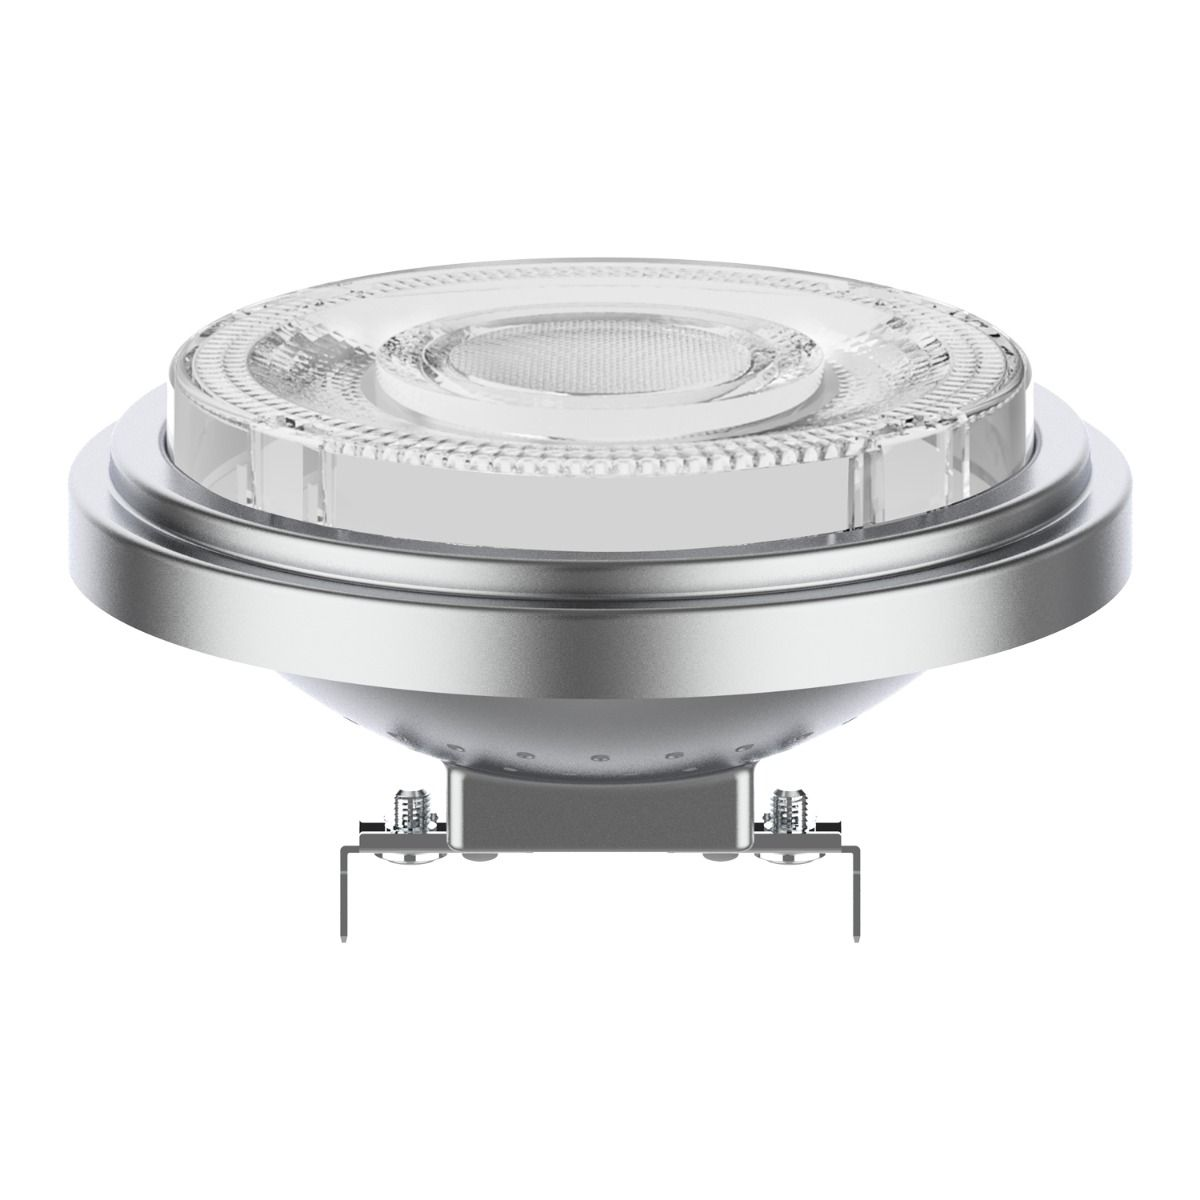 Noxion Lucent LED Spot AR111 G53 12V 11.5W 927 24D | Dimmable - Highest Colour Rendering - Replacer for 75W